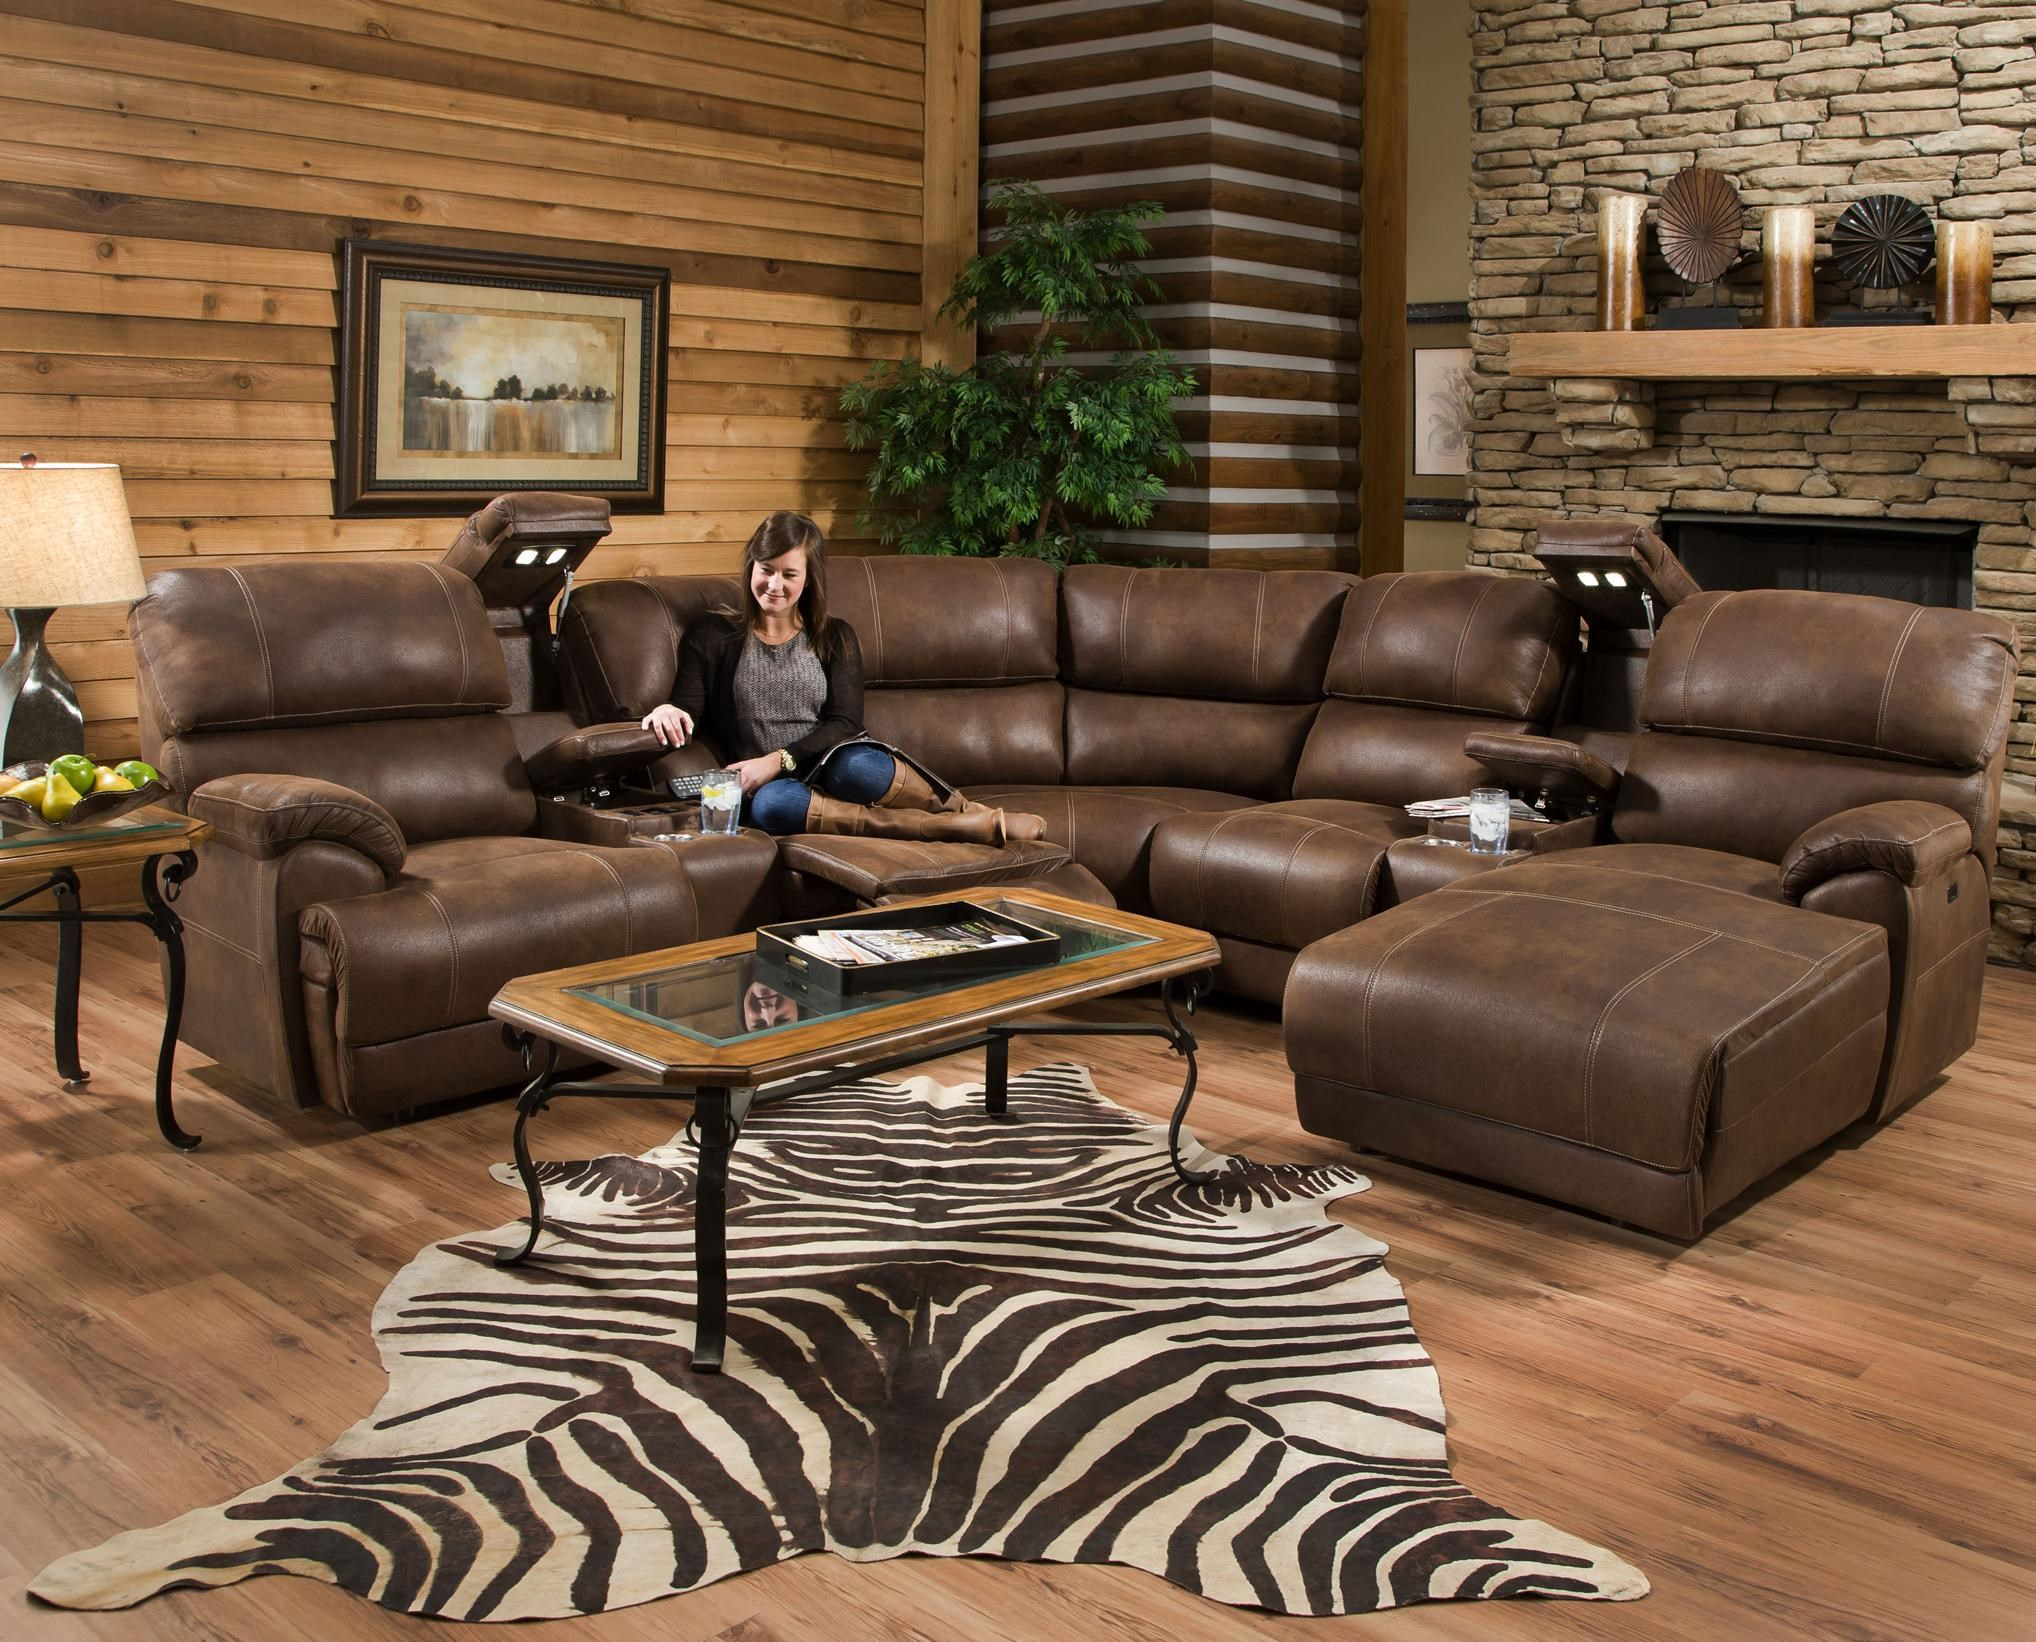 Captivating Franklin Empire Reclining Sectional Sofa With Left Side Chaise